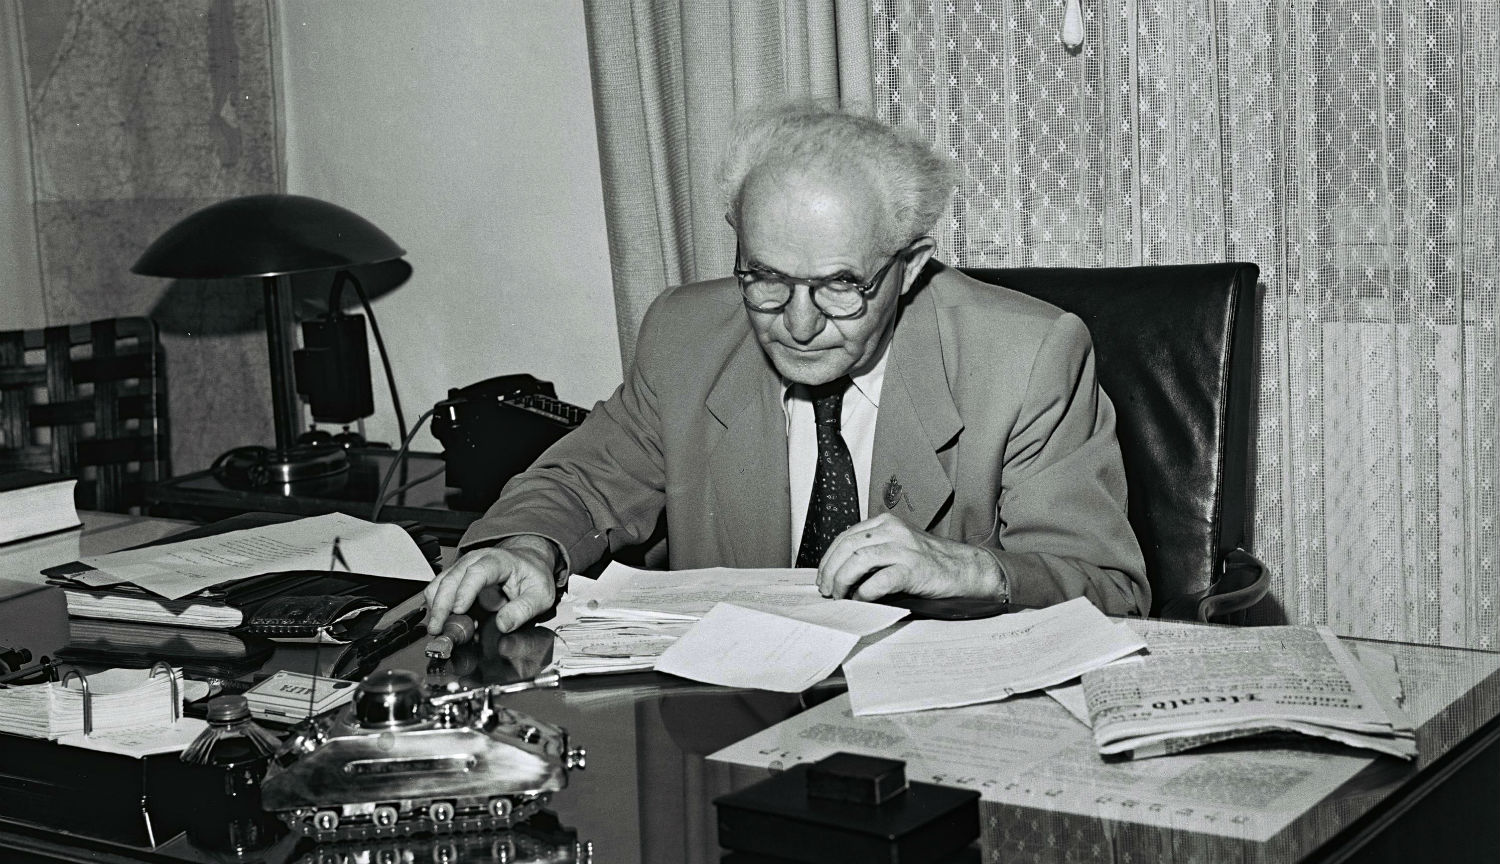 David Ben-Gurion in his Tel Aviv office on September 1, 1949 in Tel Aviv. The model of a tank on his desk is a cigarette box and lighter given to him by an Israeli soldier. GPO via Getty Images.